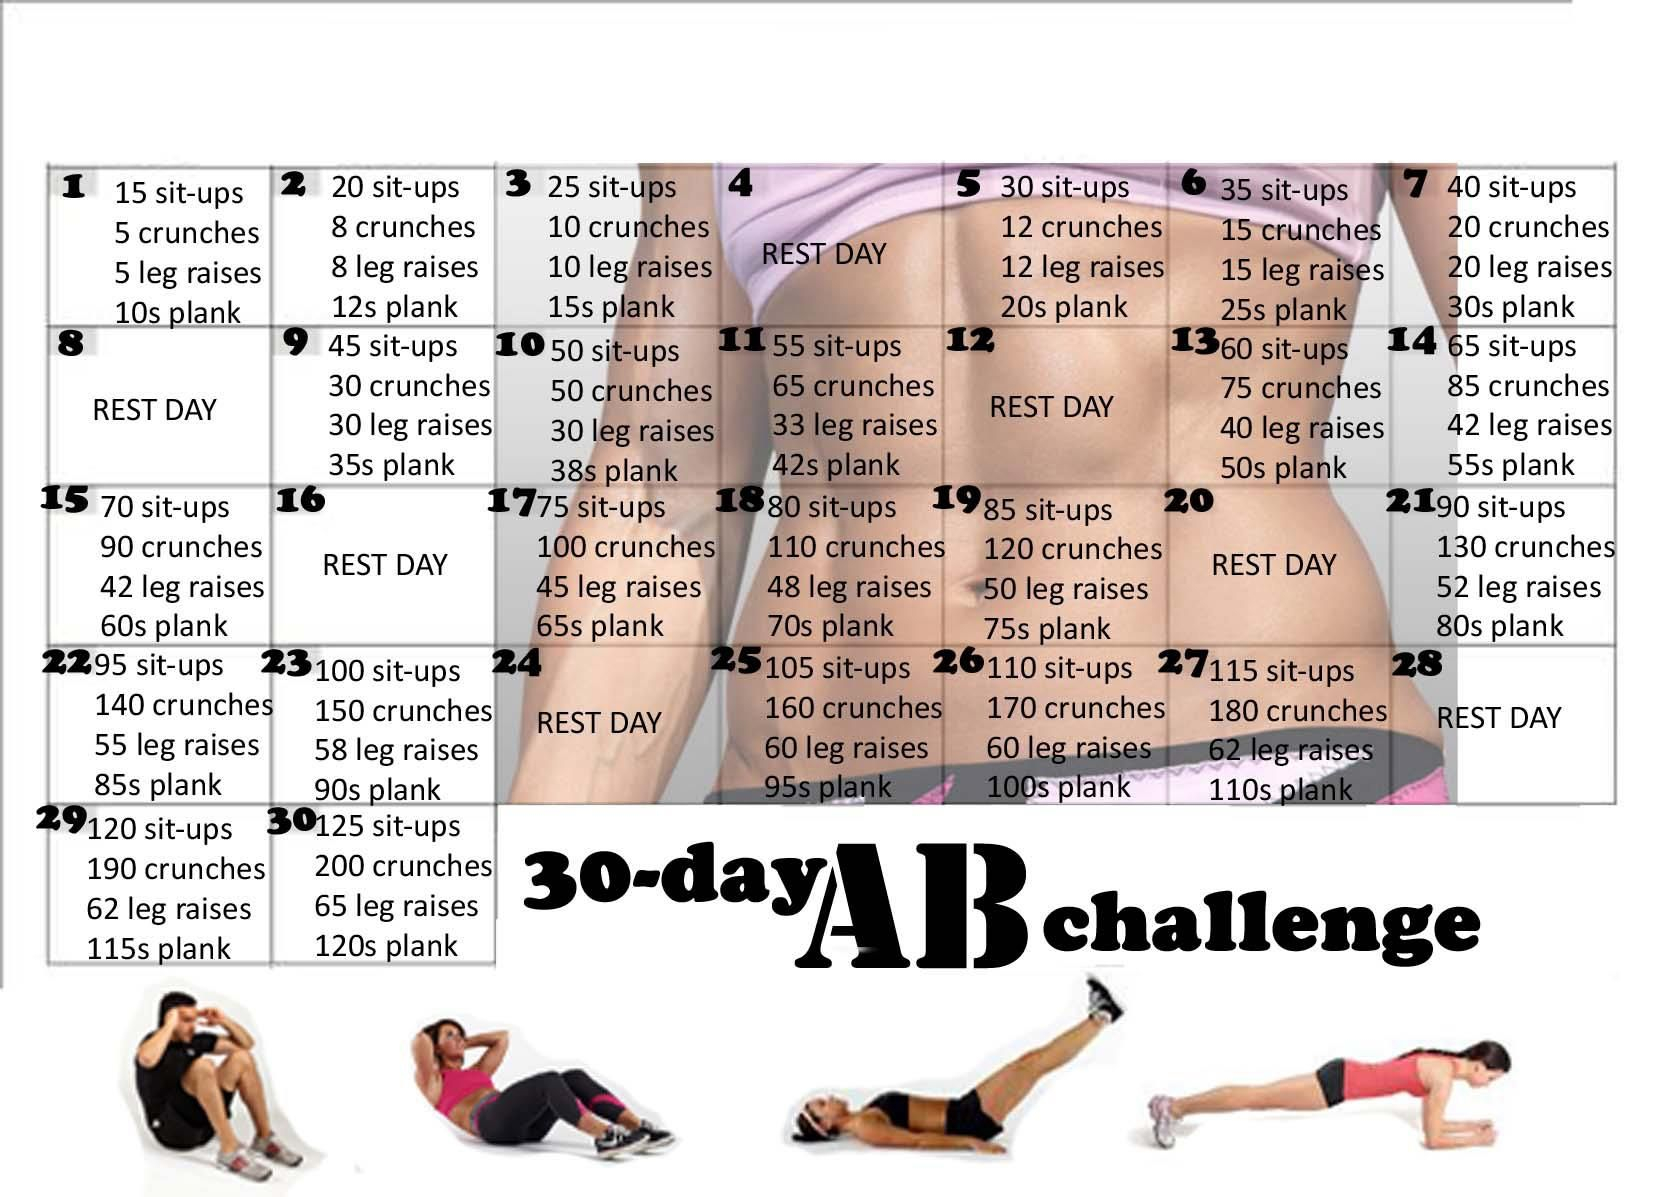 30 Day Ab Challenge | 30 Day Ab Challenge, 30 Day Abs, Ab With 30 Day Abs Challenge Printable